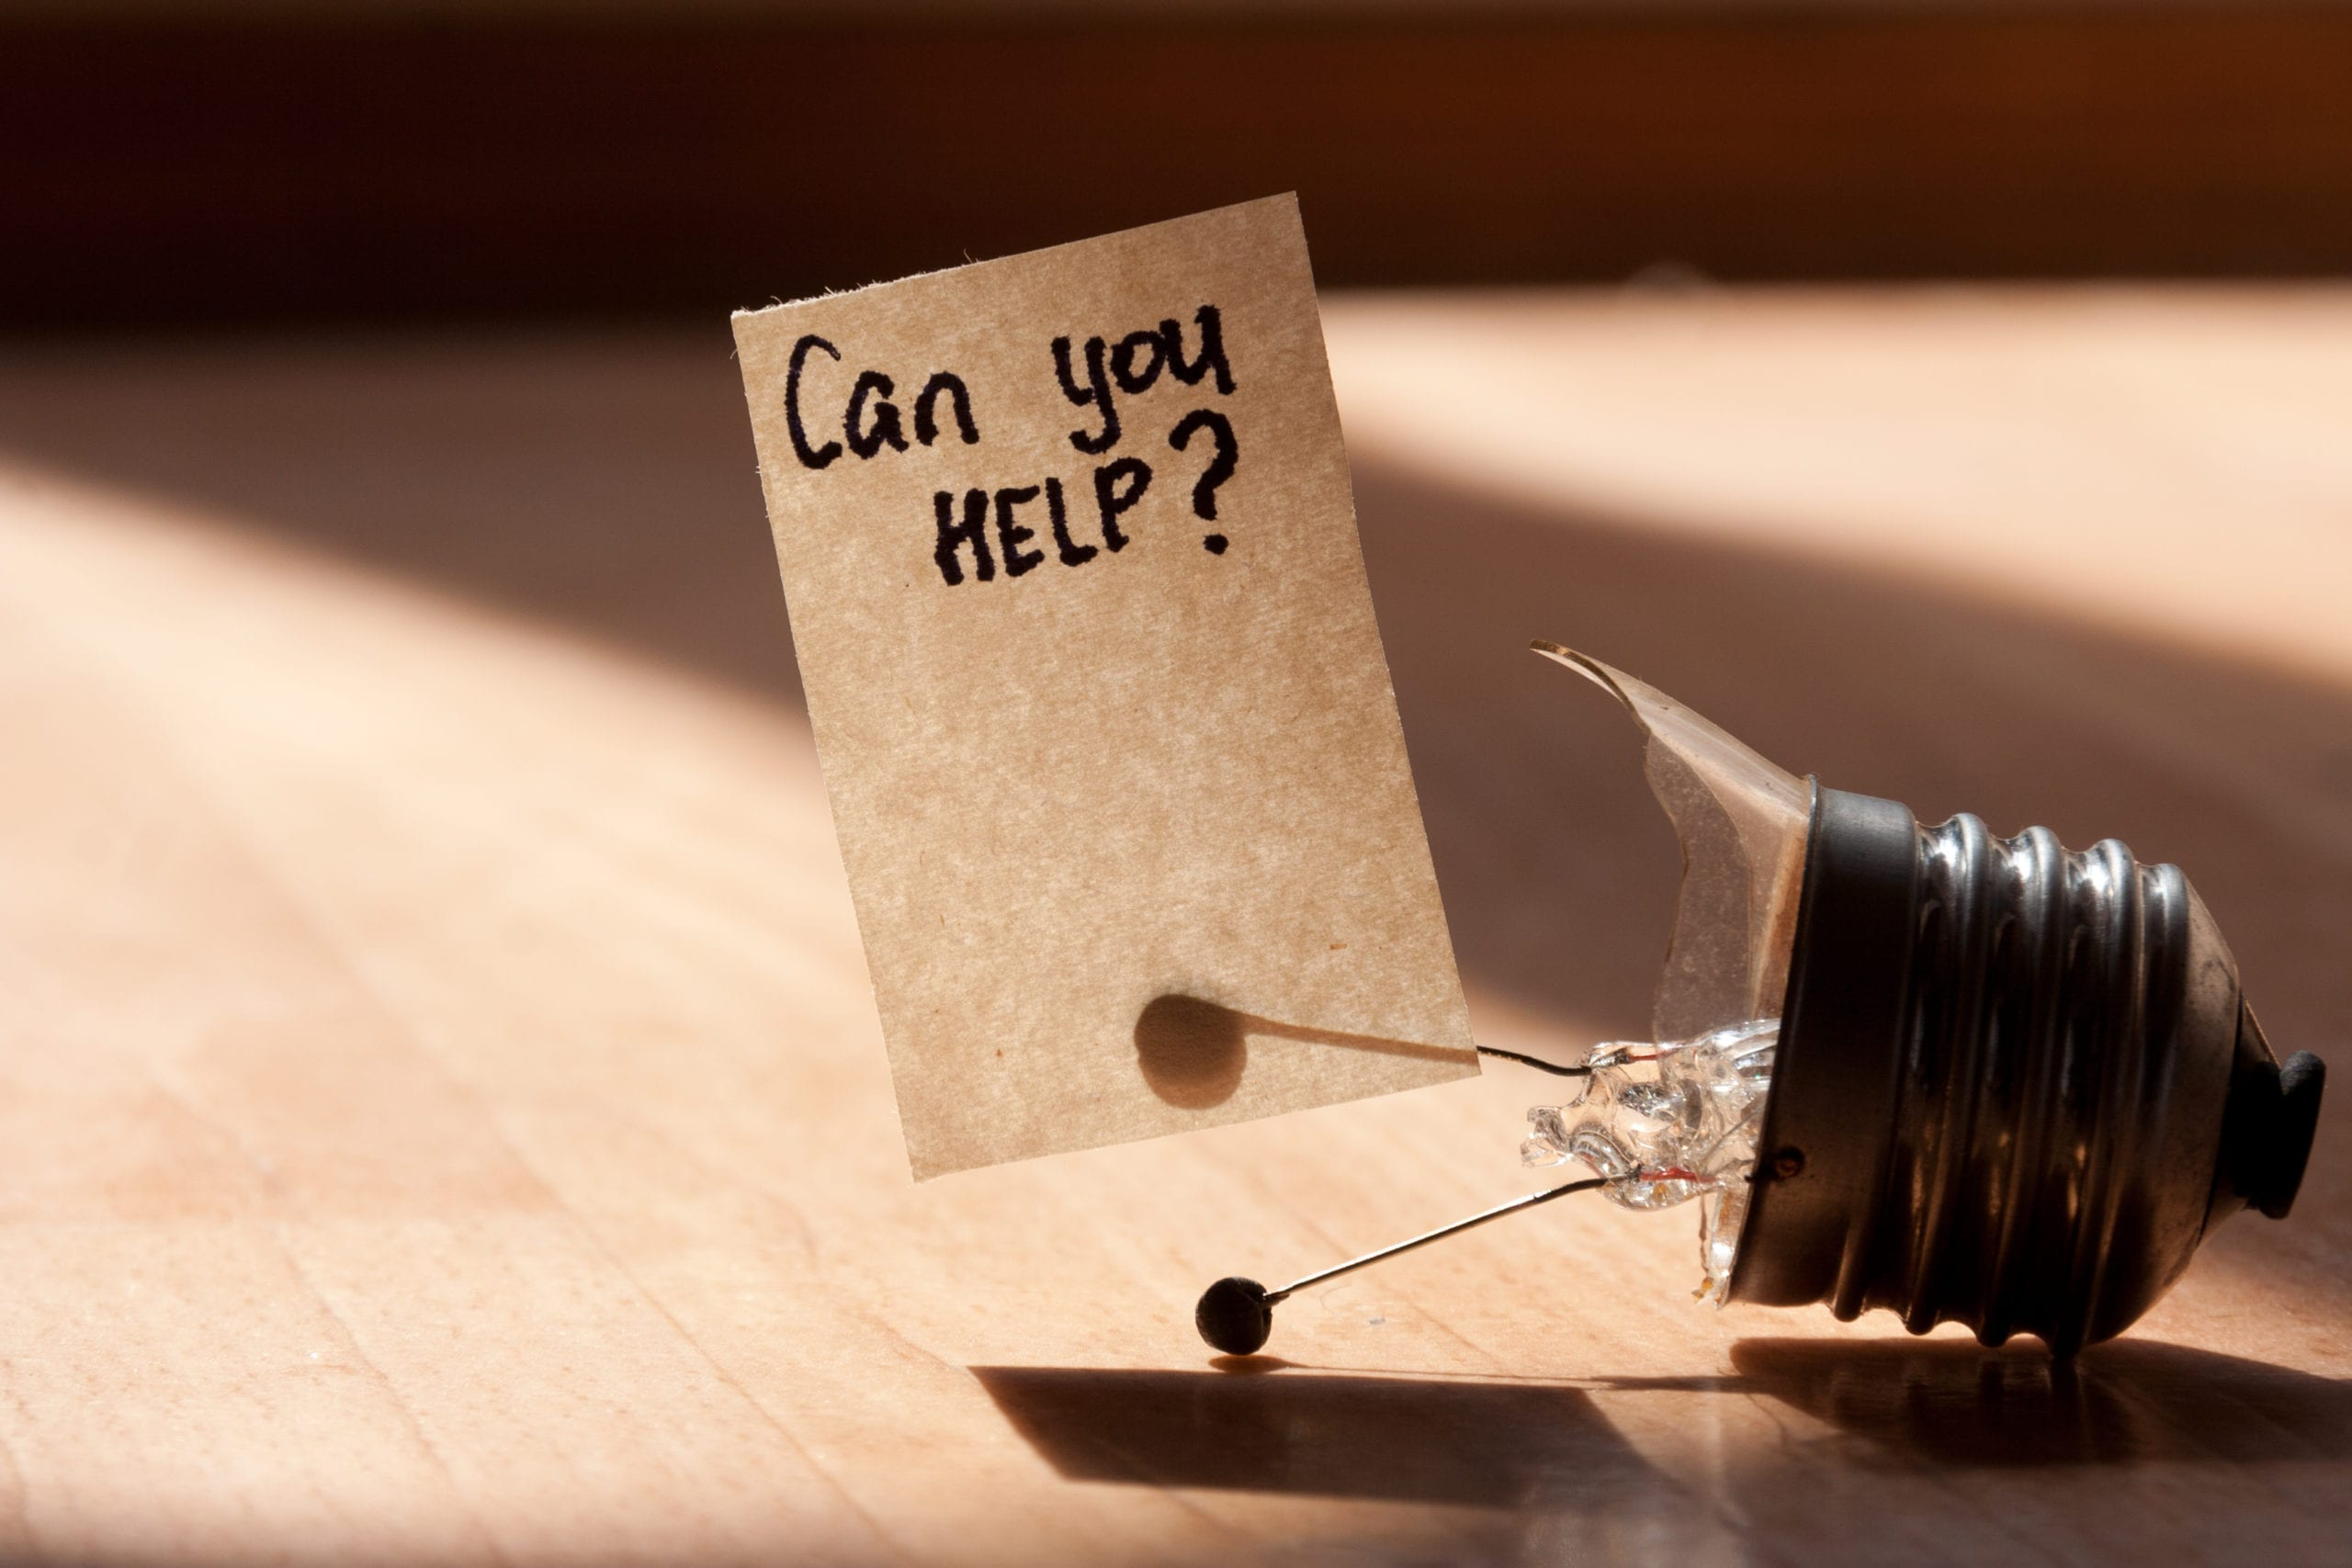 Introverts Struggle in Asking for Help